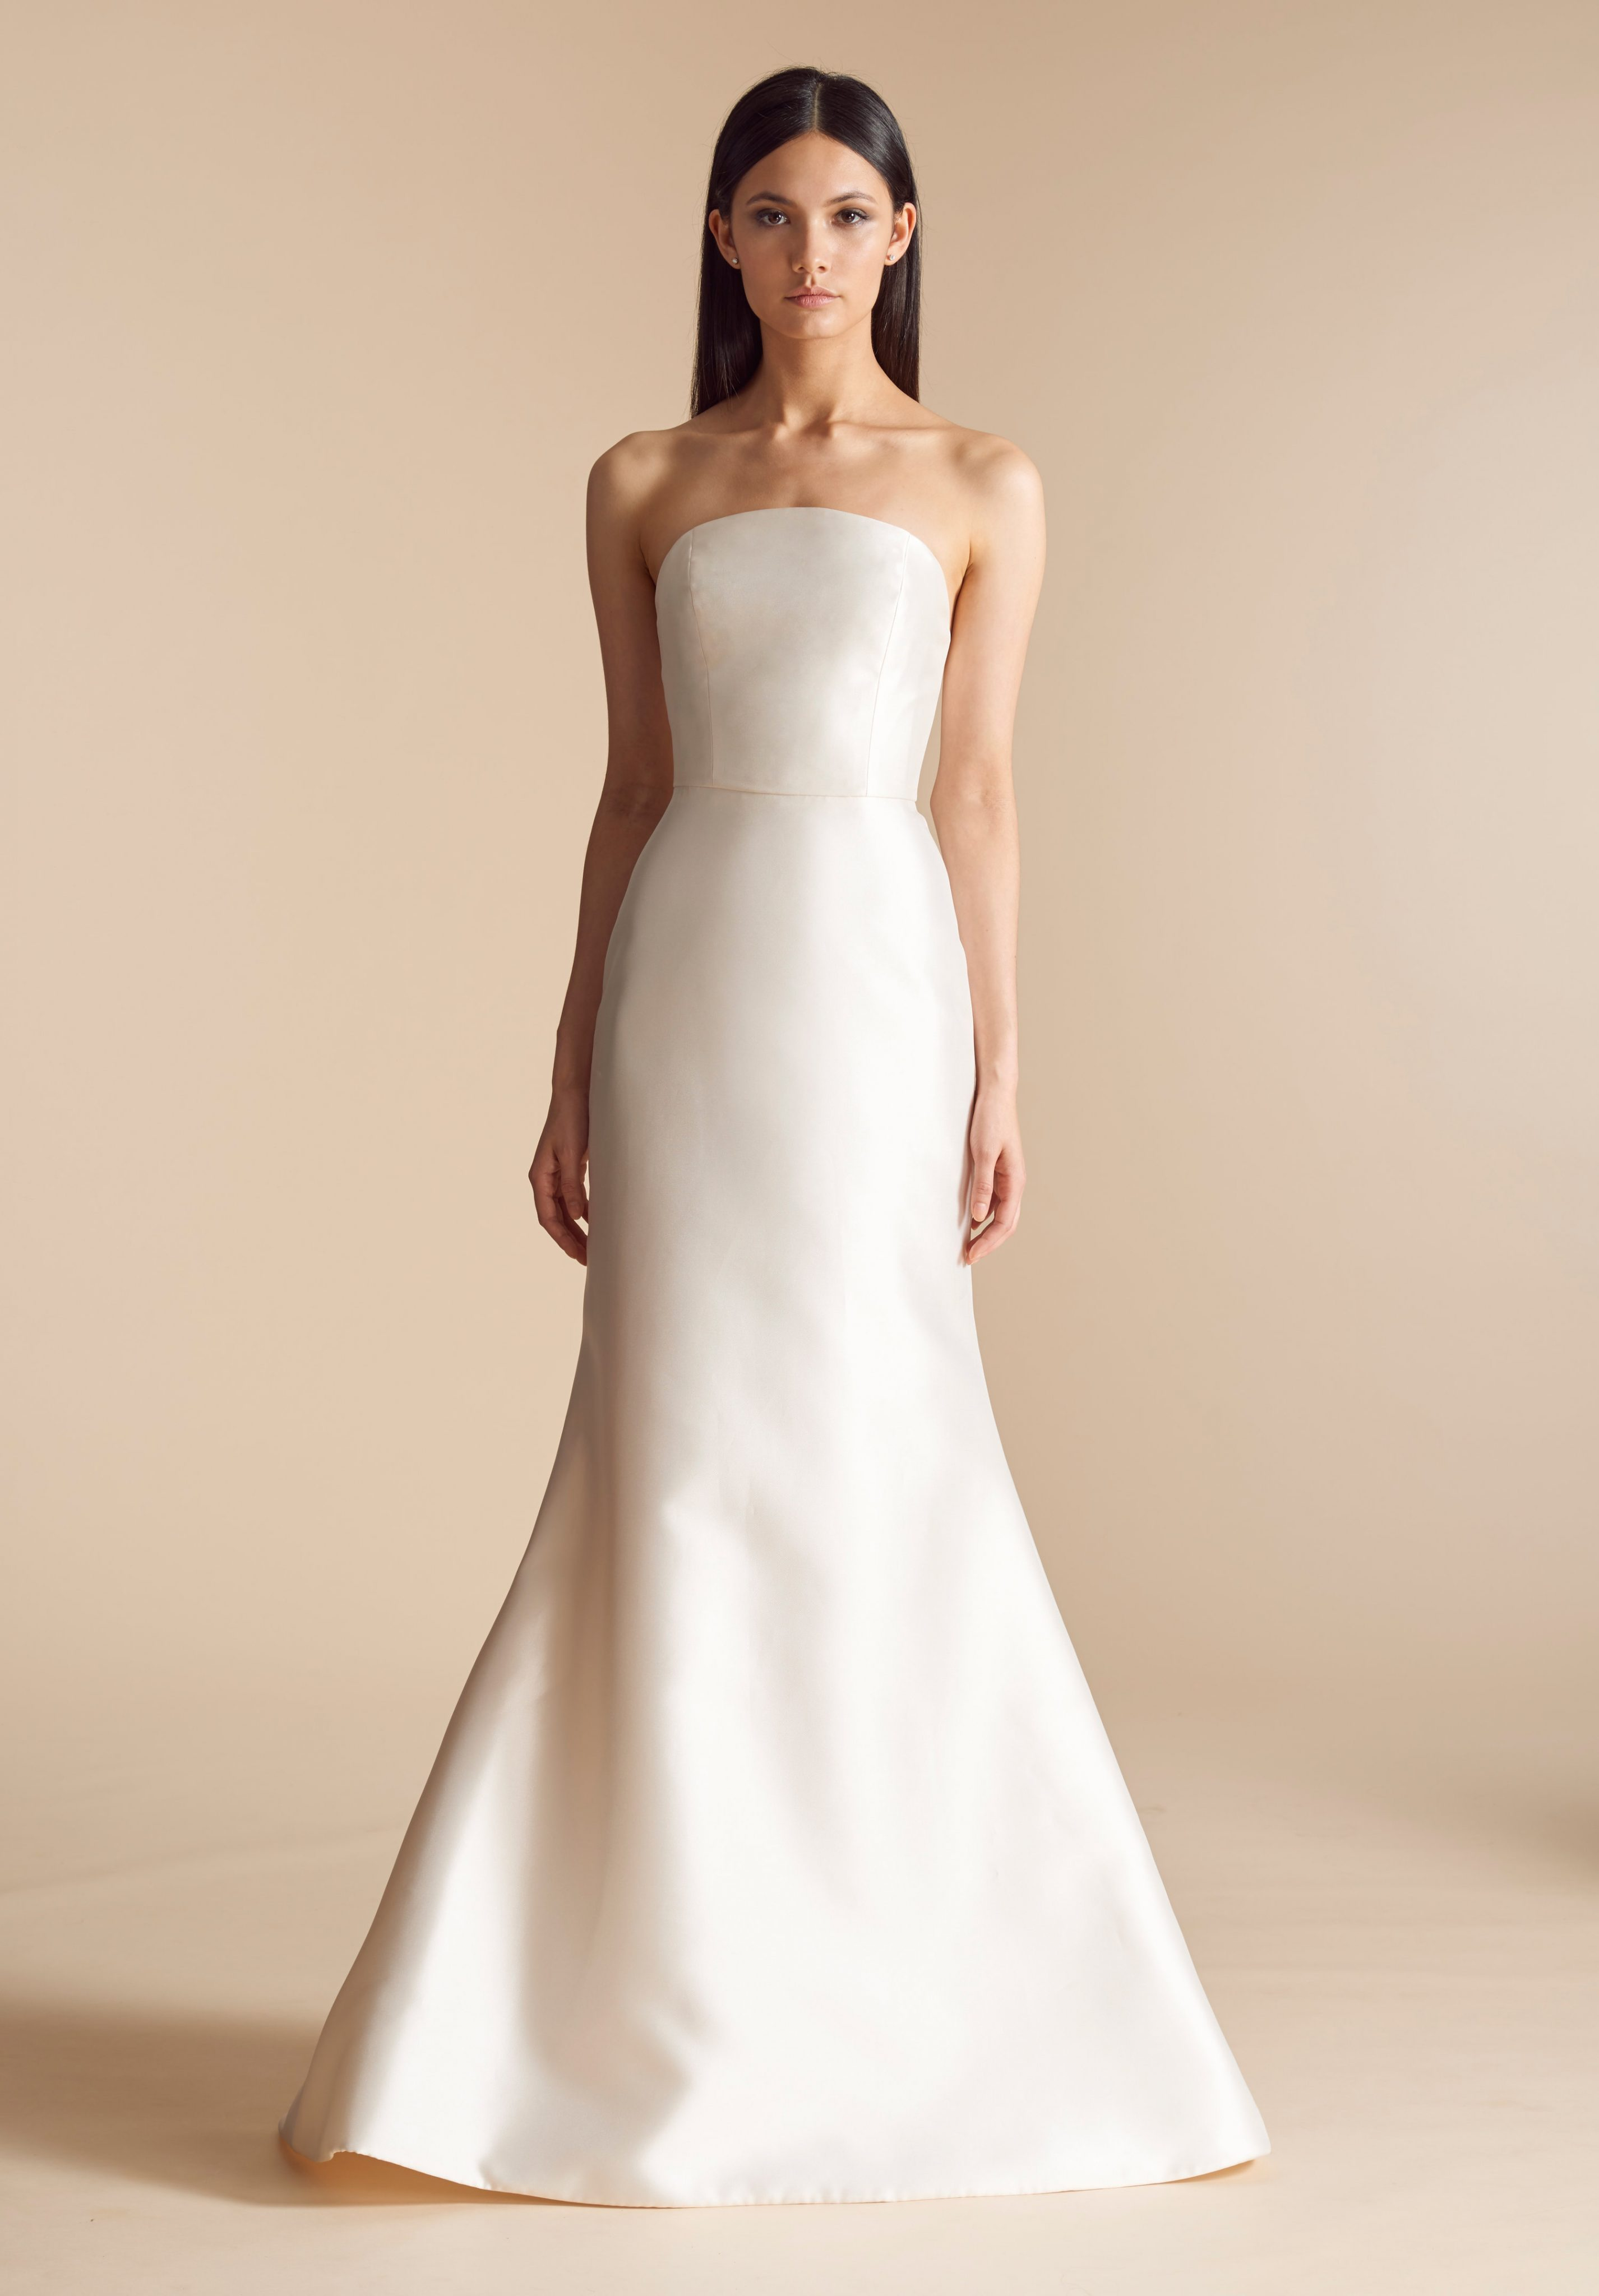 Simple Straight Neckline Silk Fit And Flare Wedding Dress ...